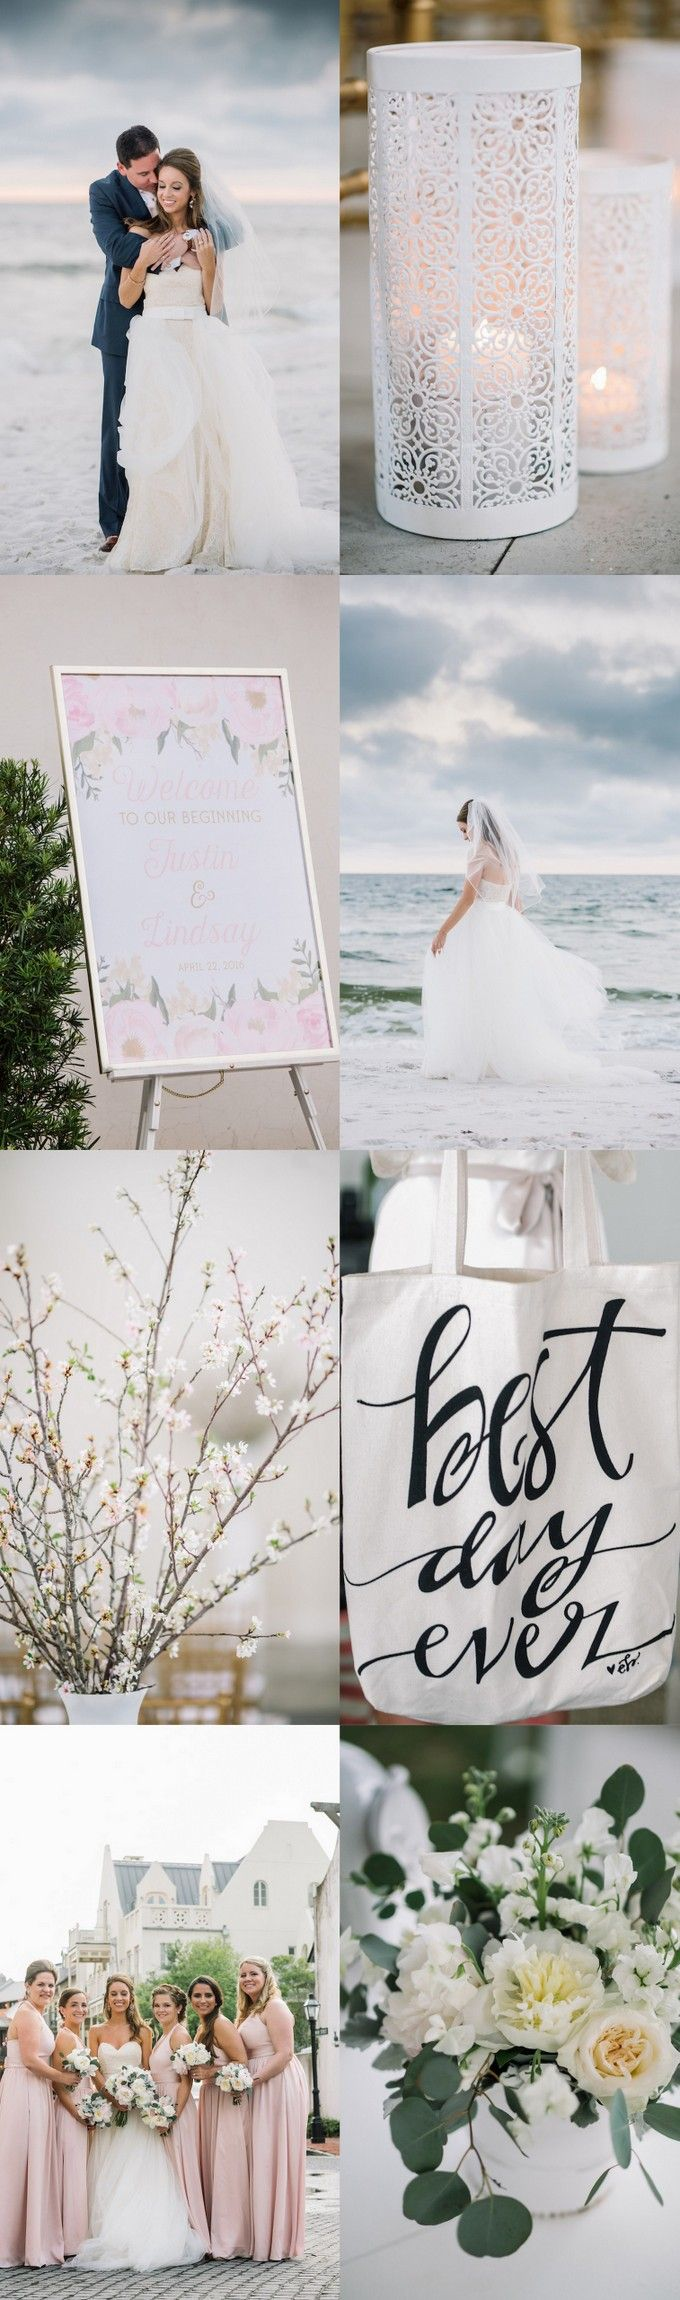 Romantic Elegant Rosemary Beach Wedding Dear WesleyAnn